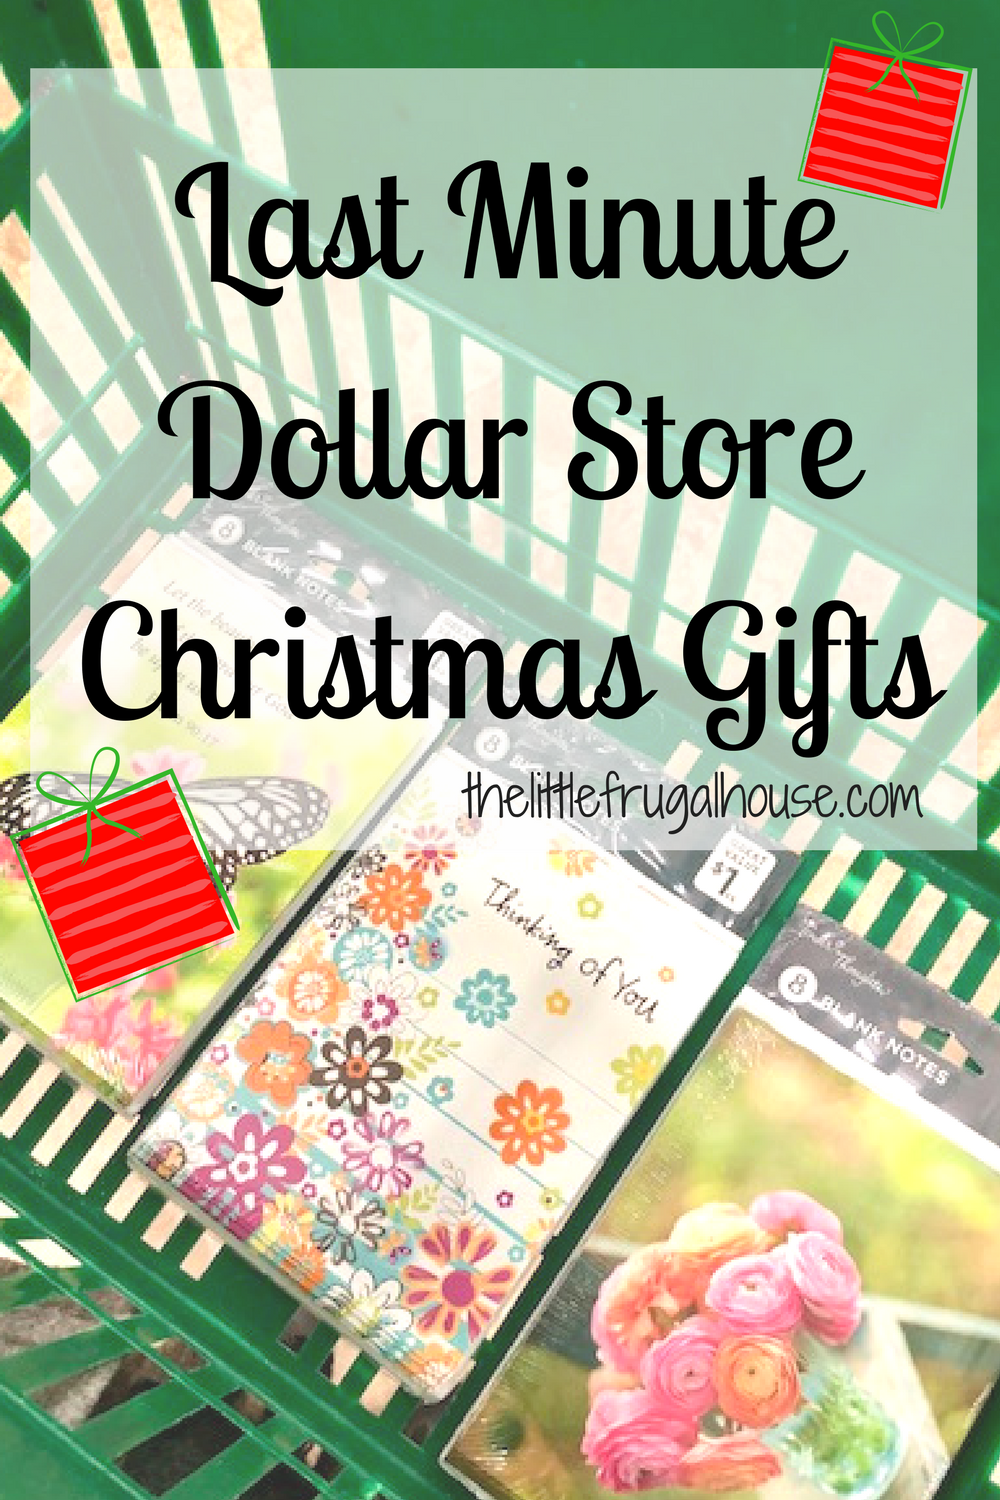 15 last minute dollar store christmas gifts the little frugal house. Black Bedroom Furniture Sets. Home Design Ideas